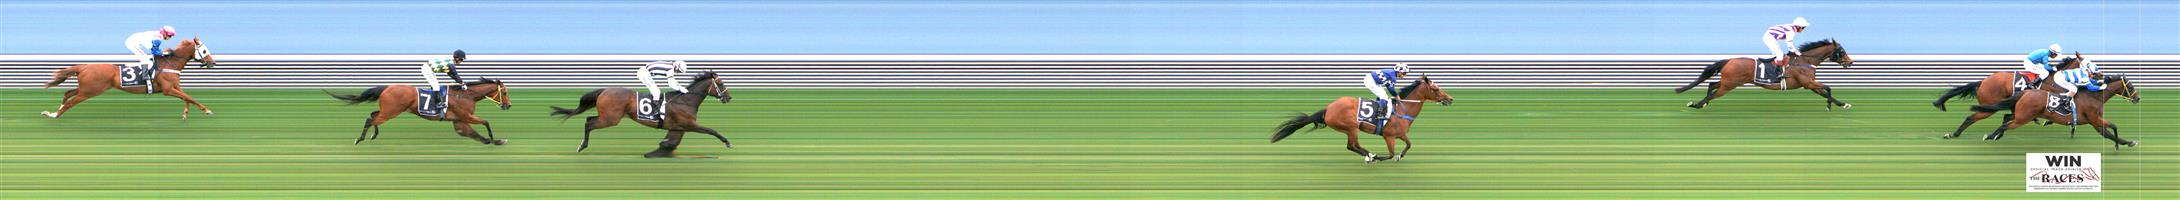 Gawler Race 1 No.5 Perfect Rhyme @ $3.80 (1.5 UNITS WIN)   Result: 4th  at SP $3.80. After settling in 2nd was off the bit and chasing before the turn and winning hopes lost soon after. Outcome -1.50 Units.